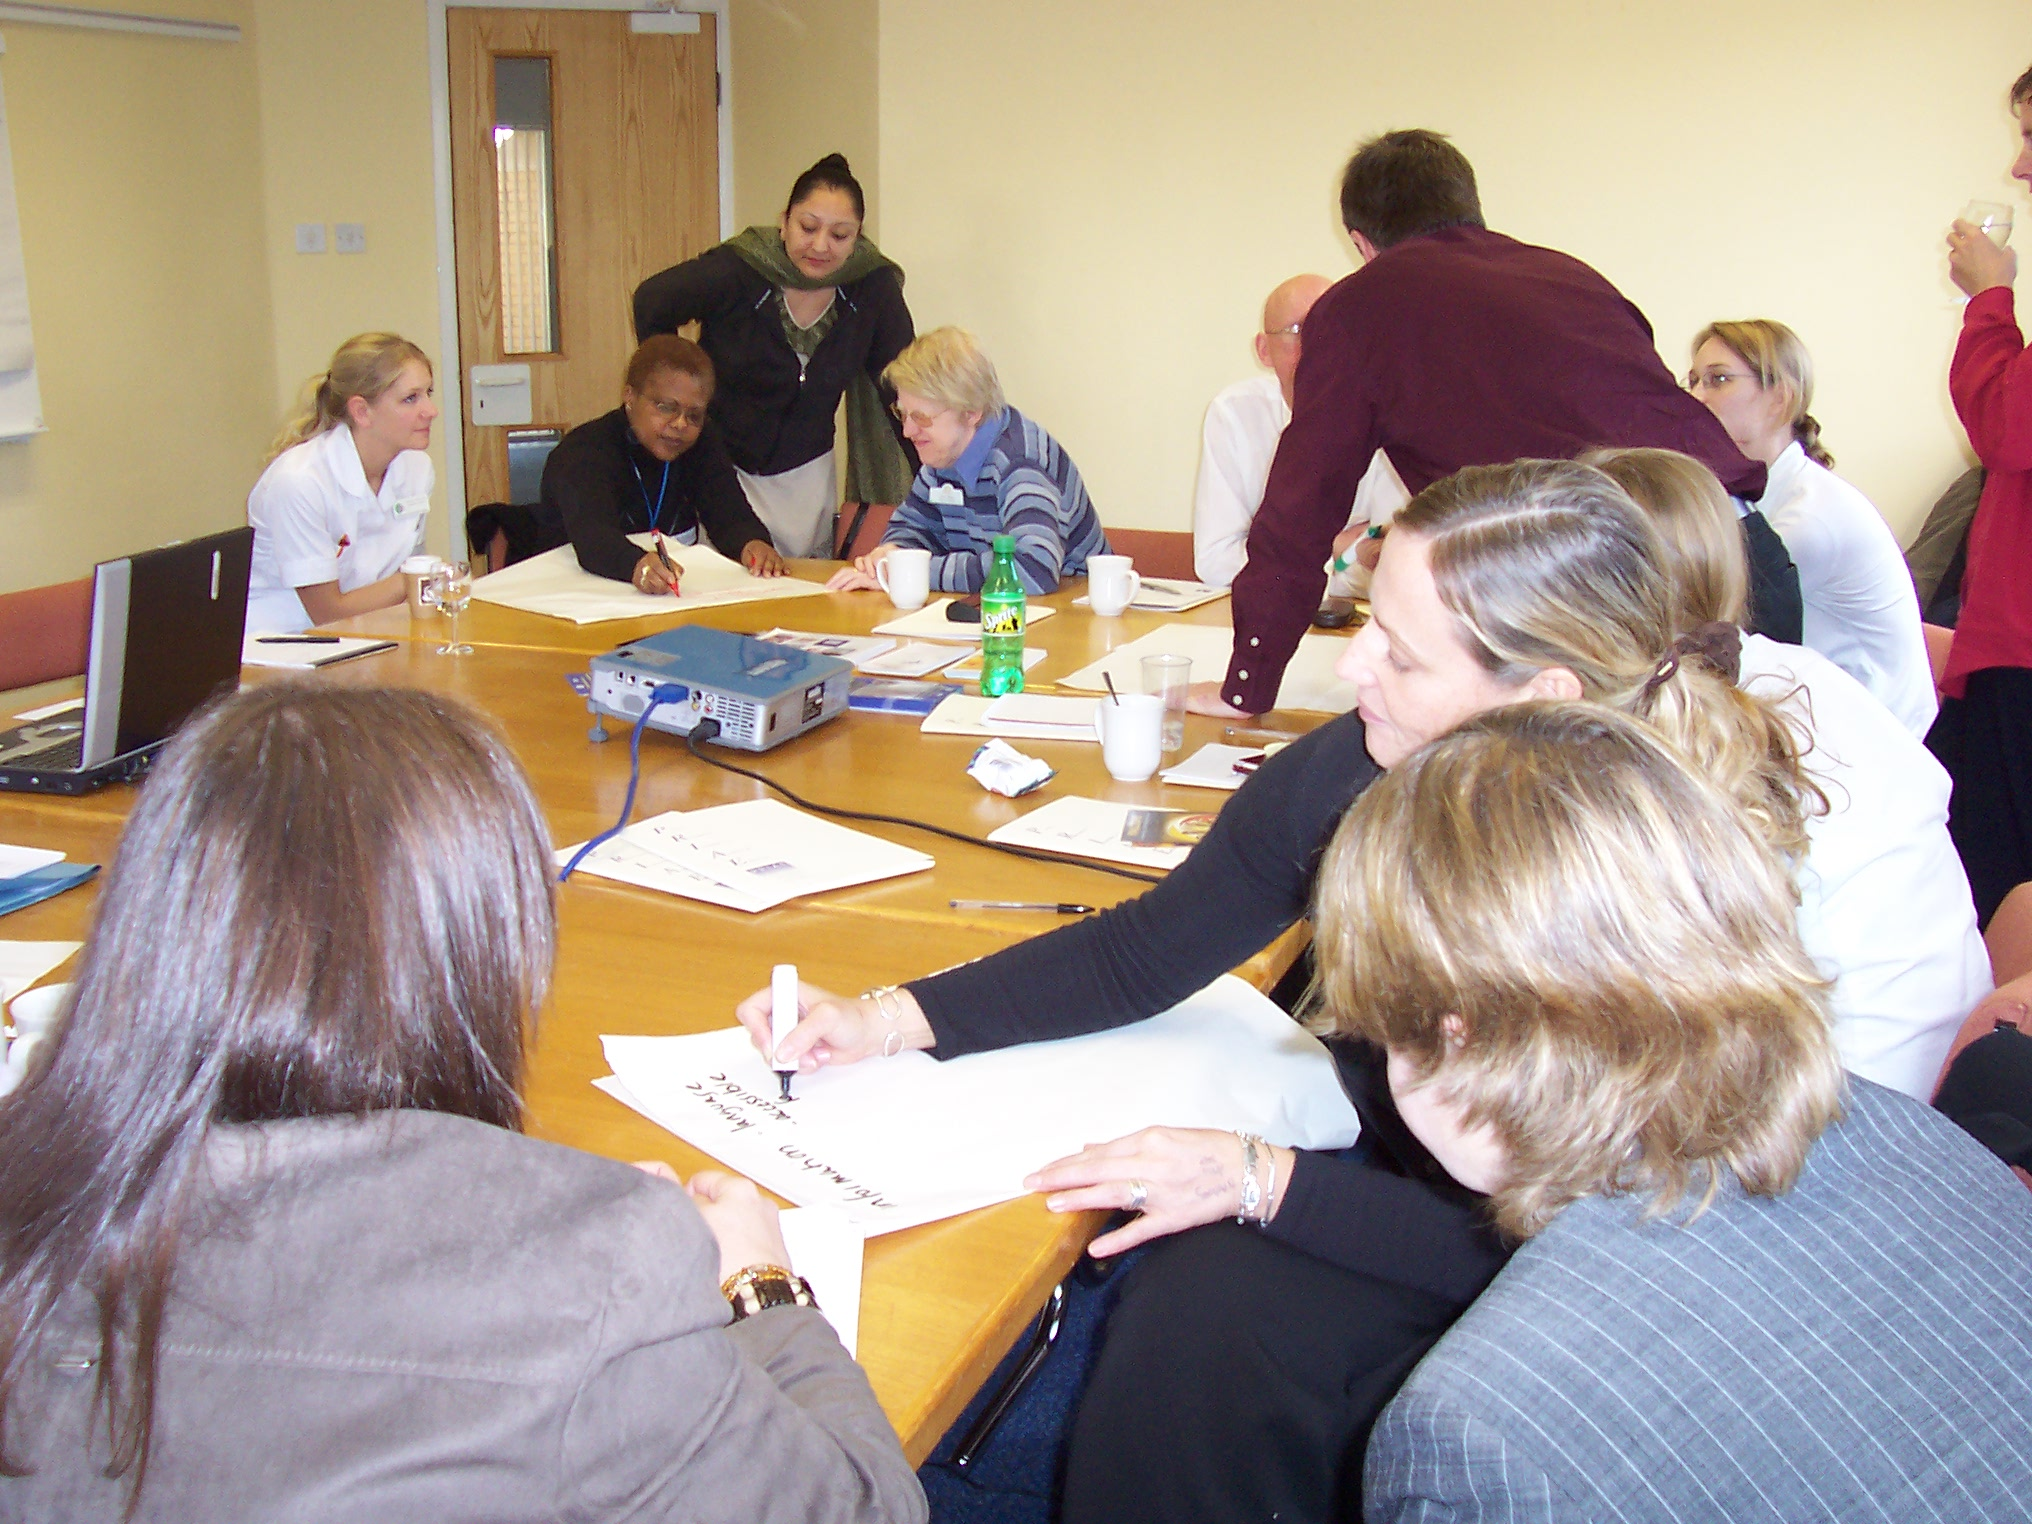 A busy workshop in palliative care on stories